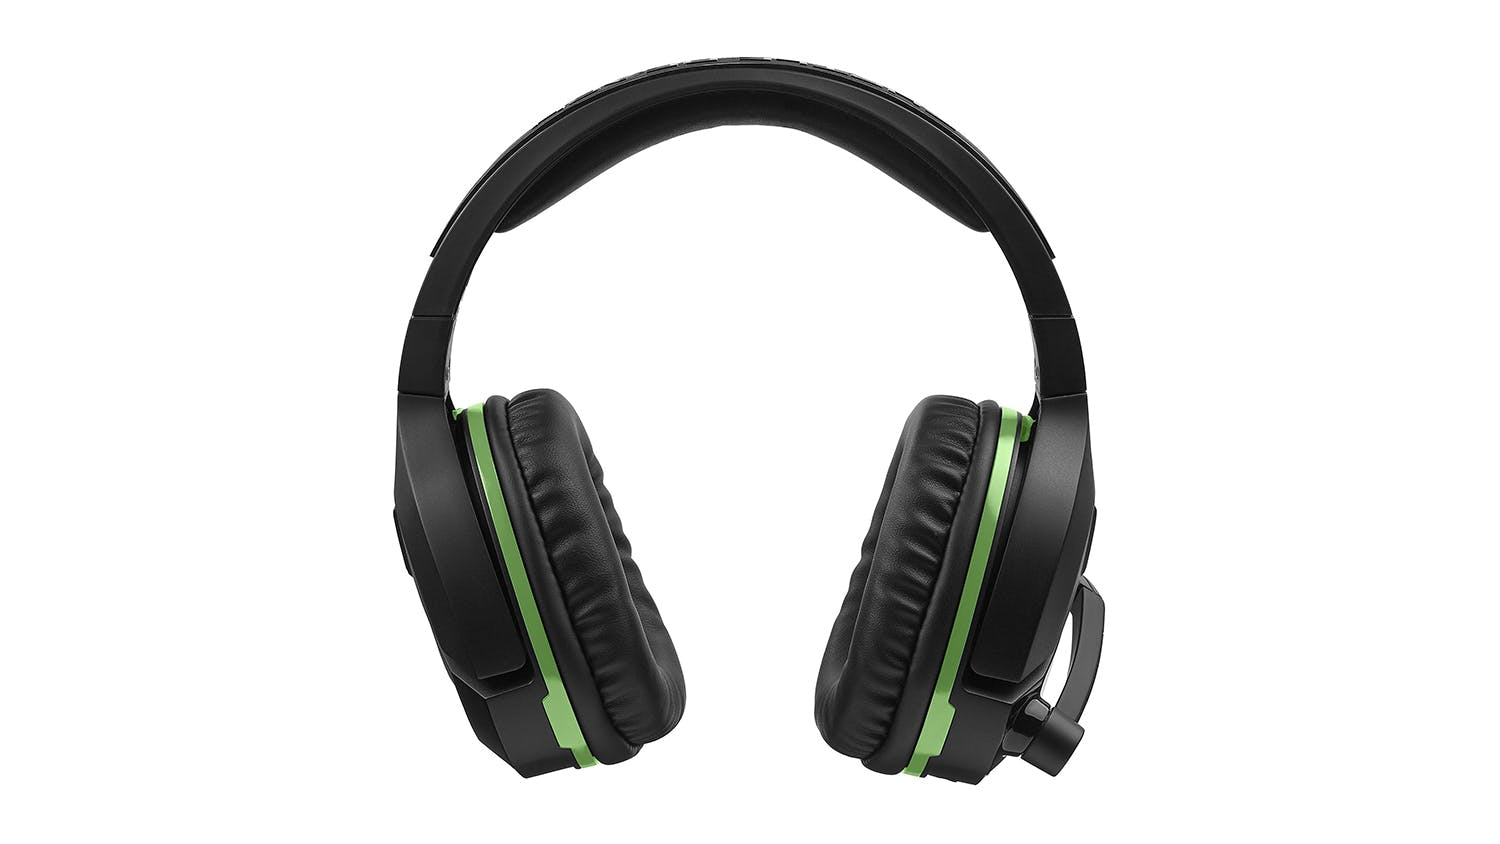 Turtle Beach Stealth 700 Wireless Gaming Headset for Xbox One